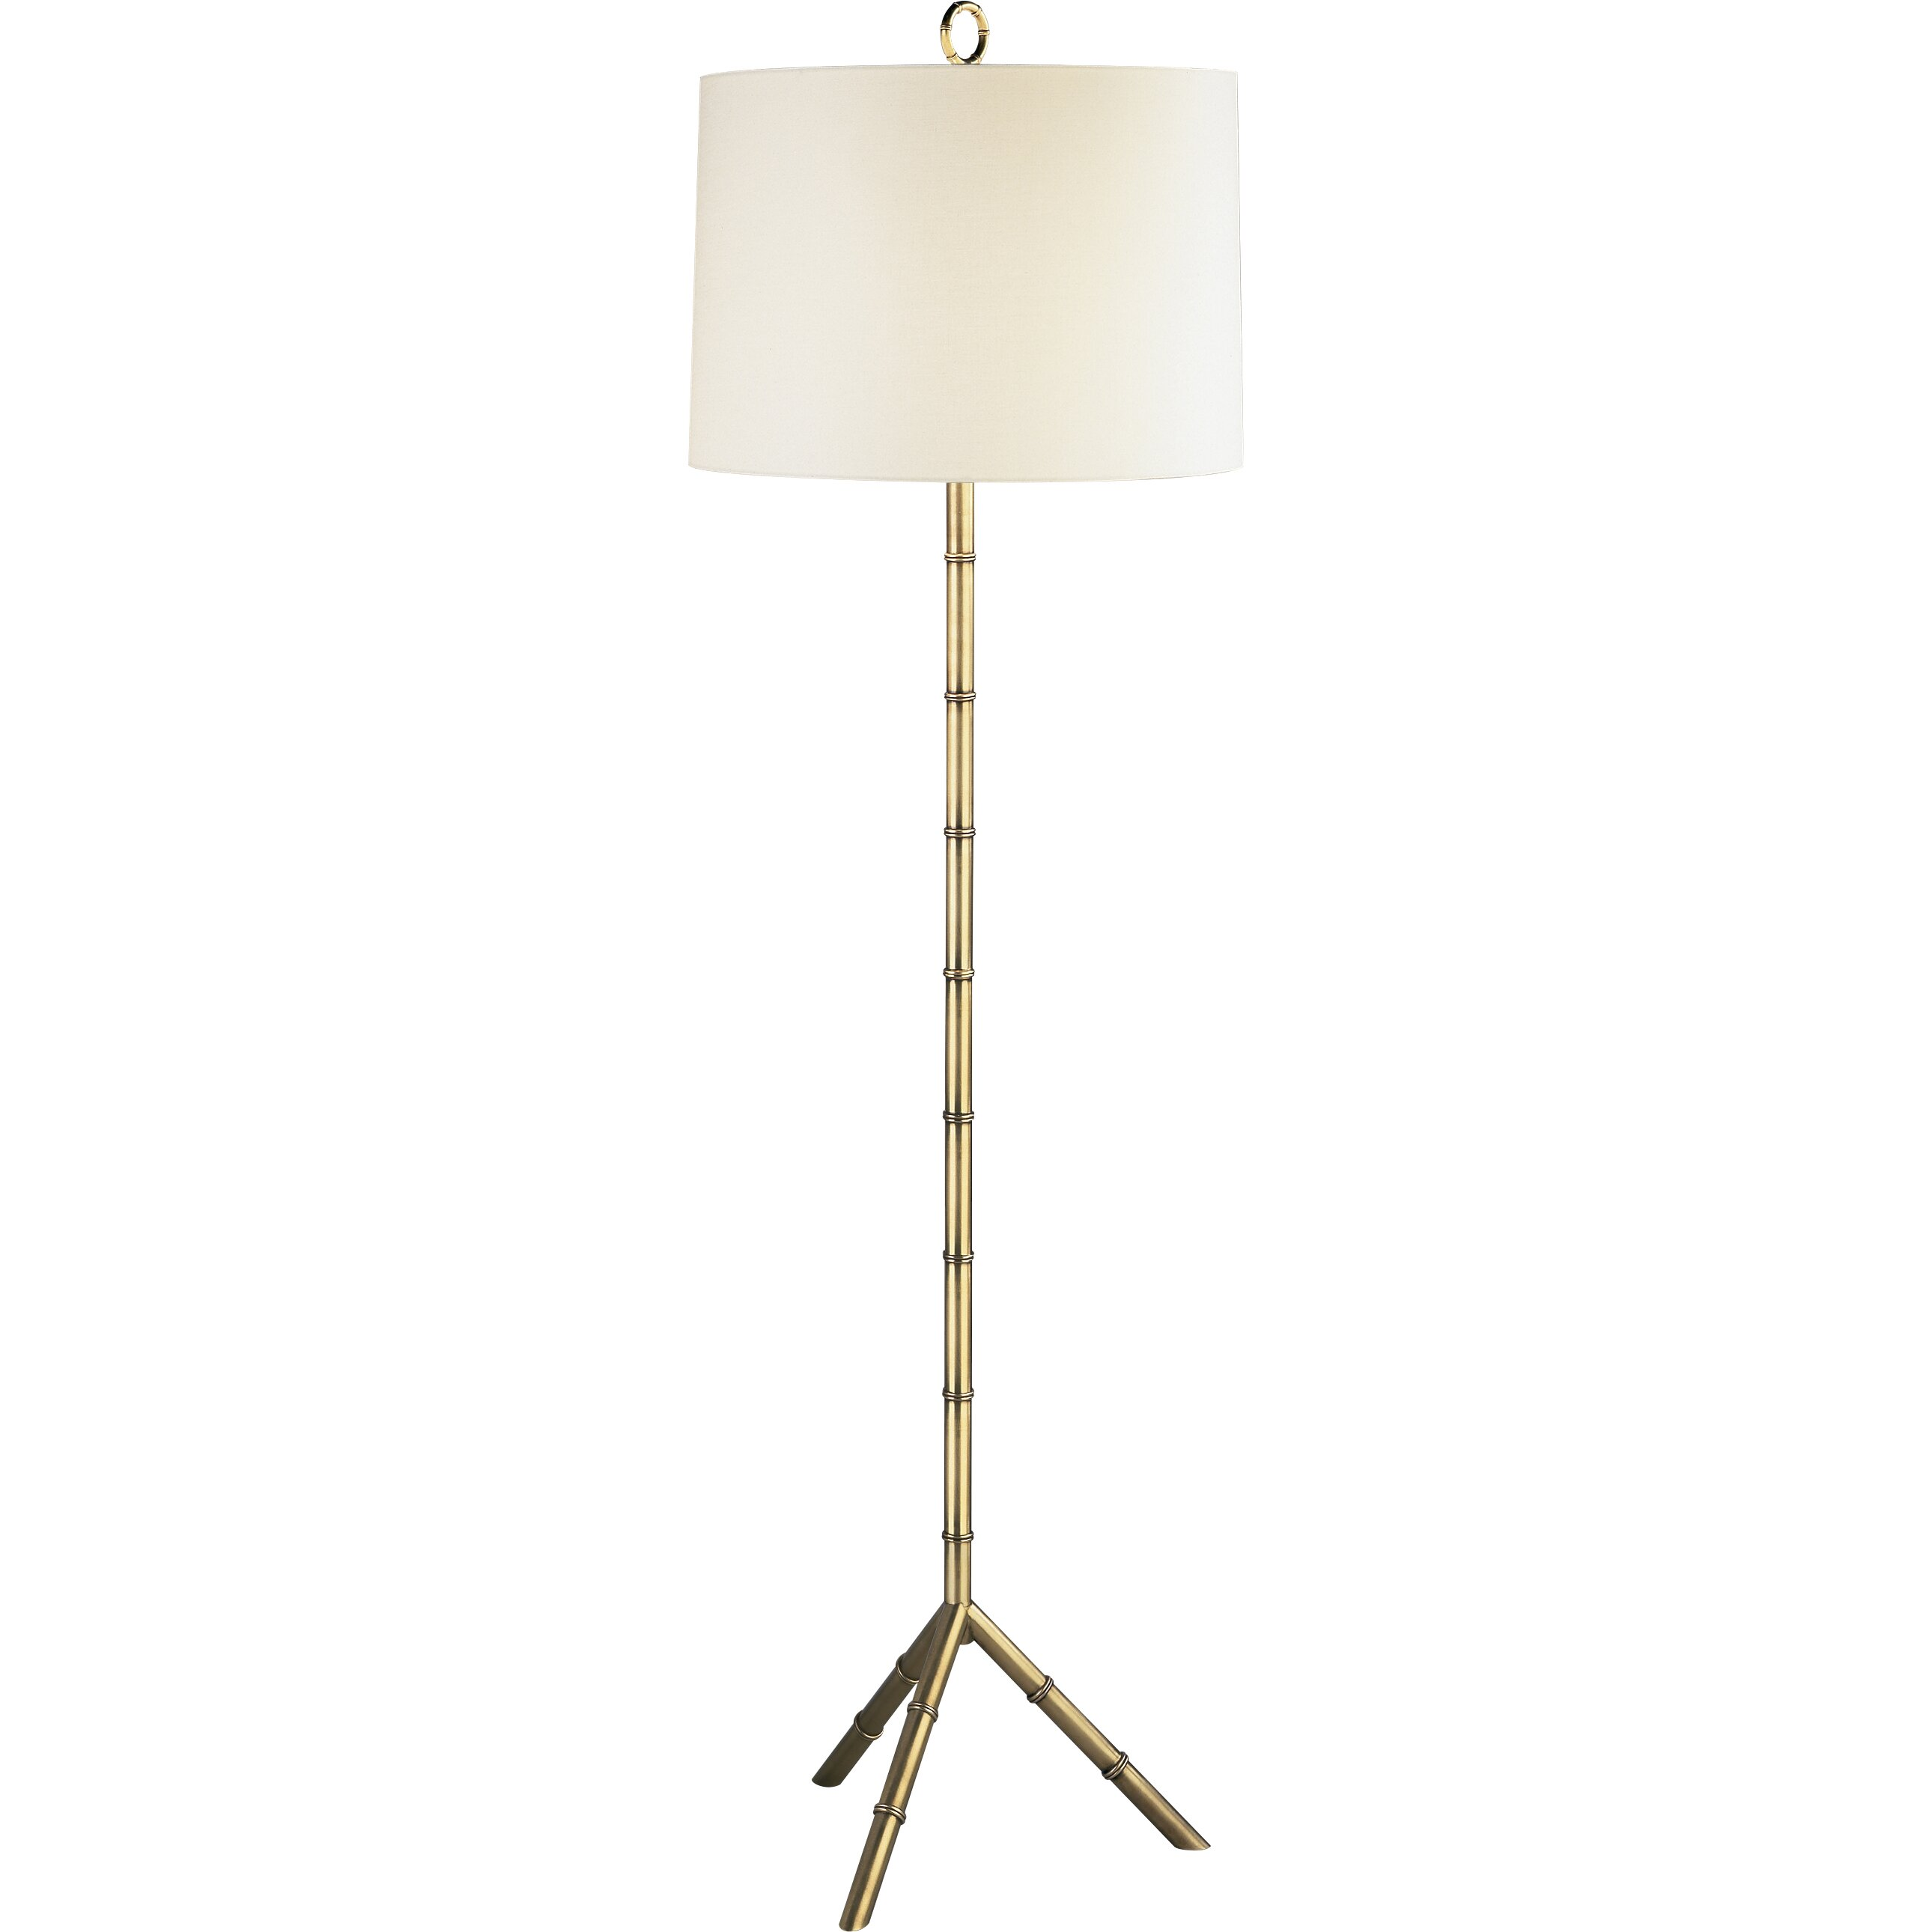 jonathan adler meurice floor lamp reviews wayfair. Black Bedroom Furniture Sets. Home Design Ideas